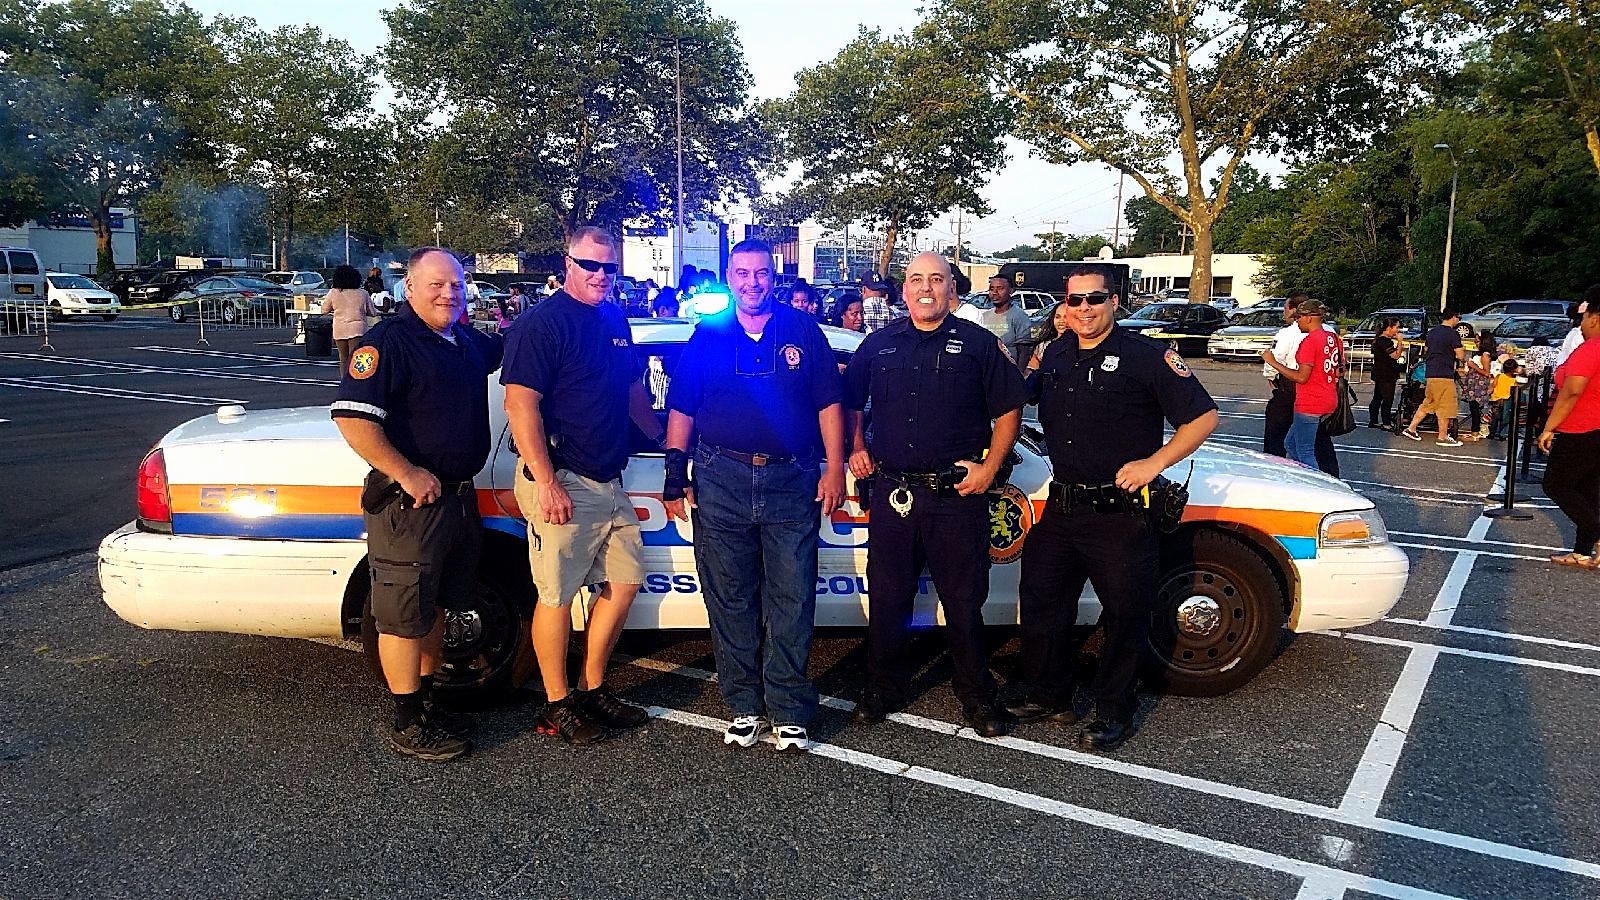 Fifth Precinct officers and community activist Hesham Khafaga, of Franklin Square, center, showed their support for their community at the National Night Out event held at the Green Acres Mall in Valley Stream on Aug. 1.